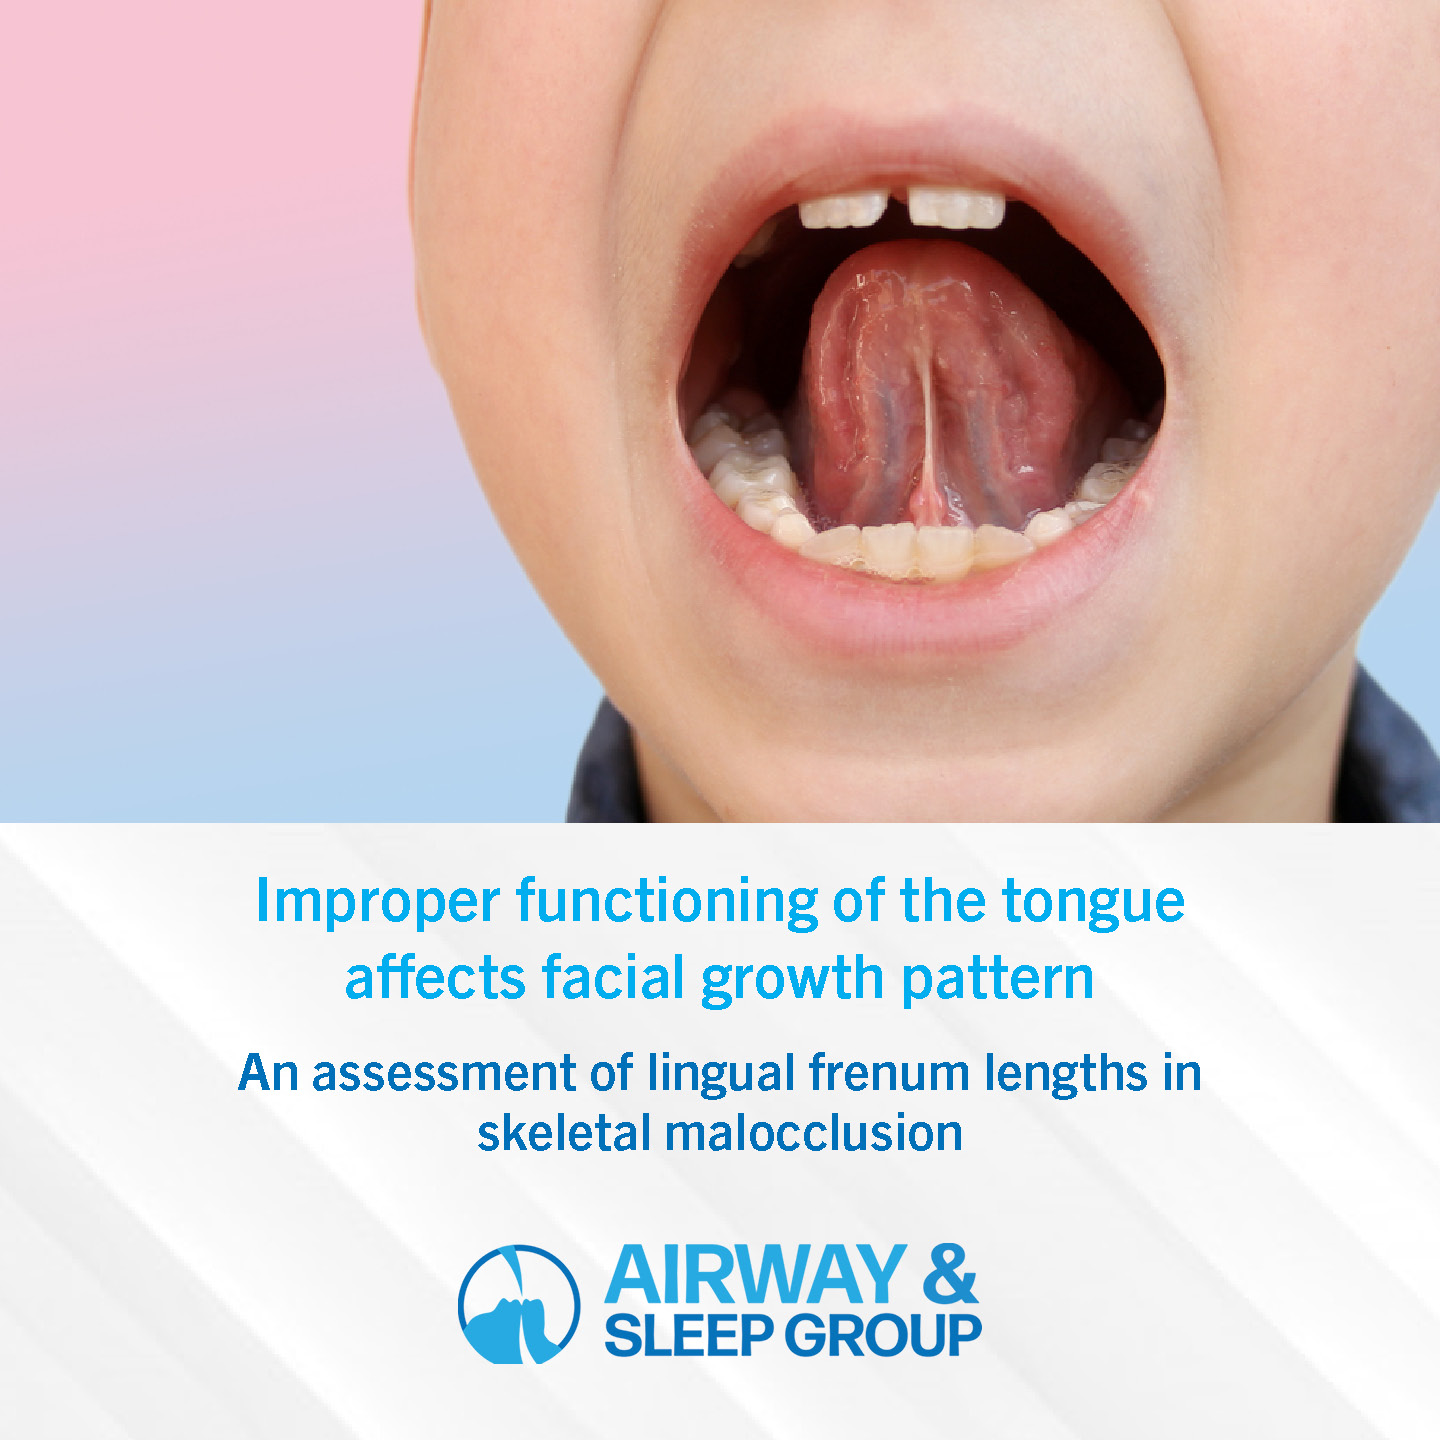 The wrong positioning and function of the tongue can affect the facial growth pattern